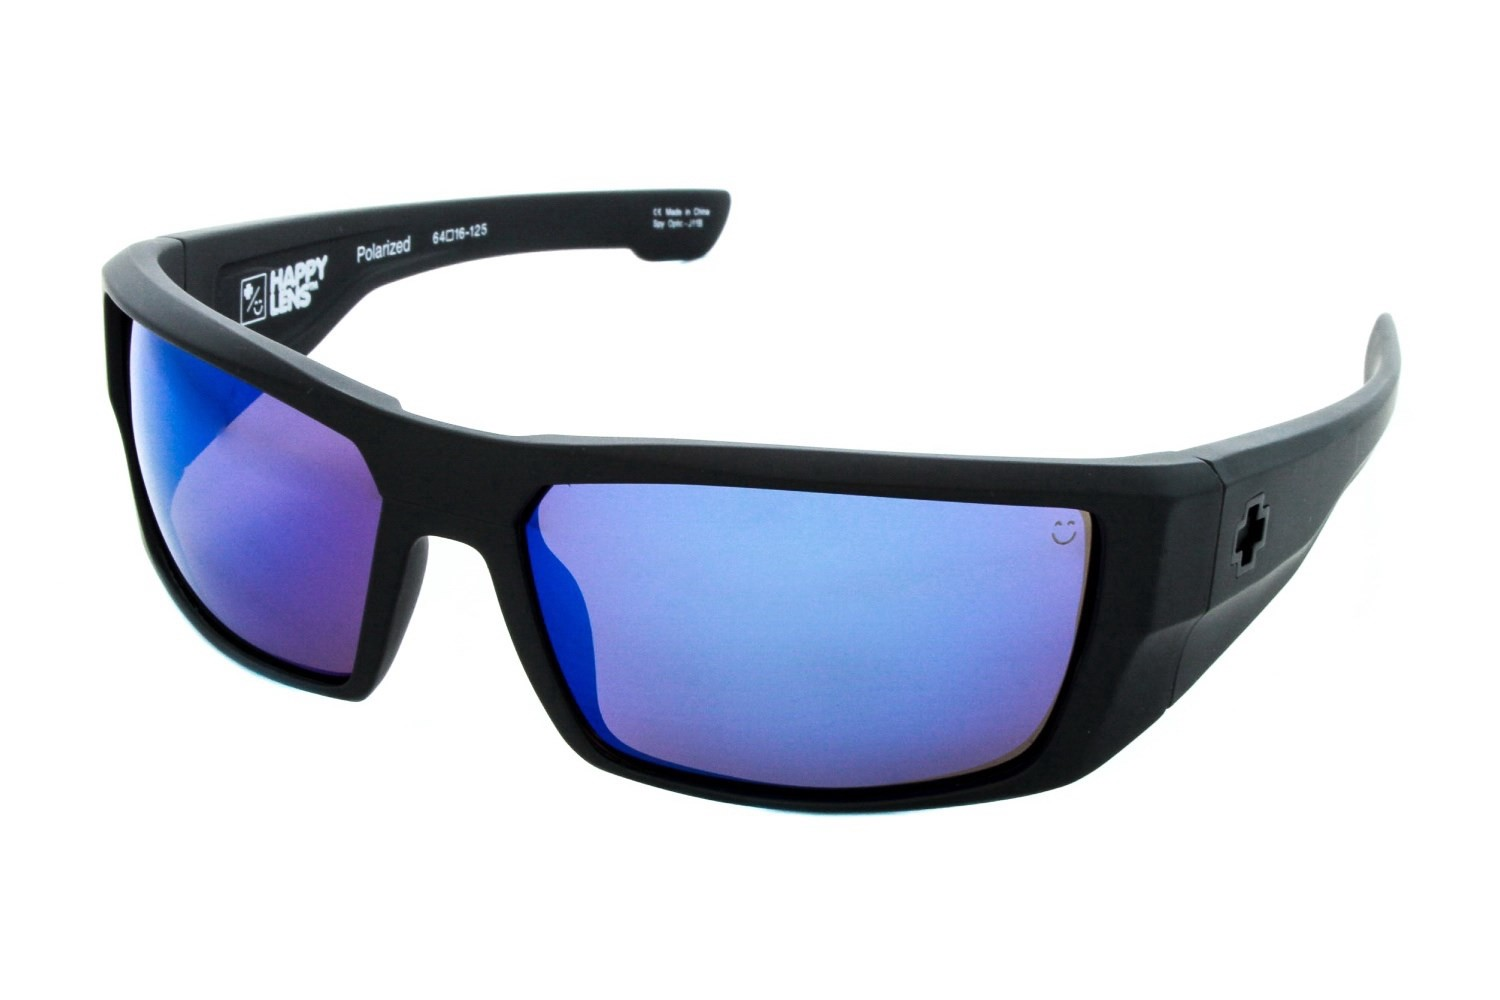 564664a98cf Review Spy Optic Dirk Polarized Sunglasses – Review Contact Lenses – Medium